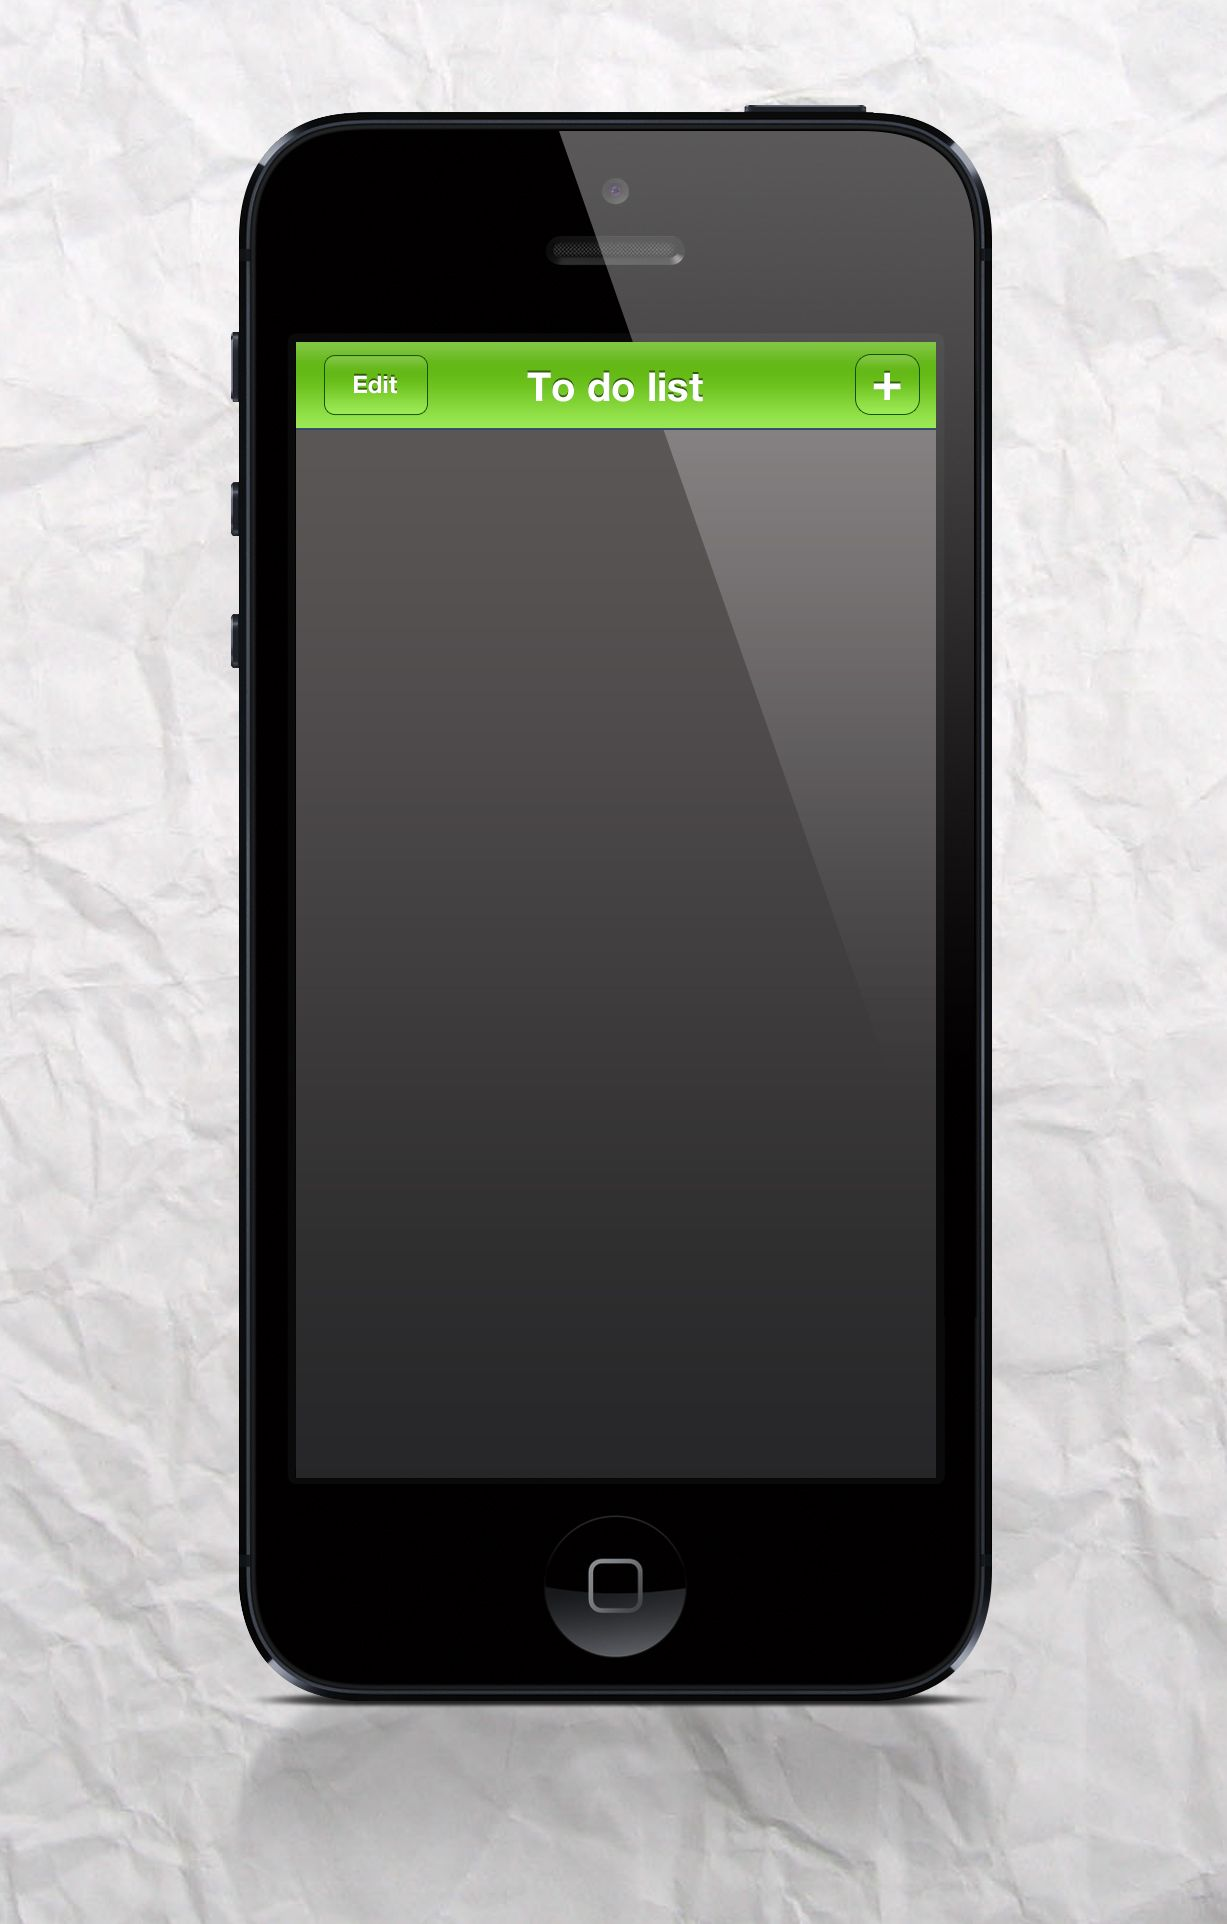 Fun Top Do List/Secret Messaging App ios 3 Mobile